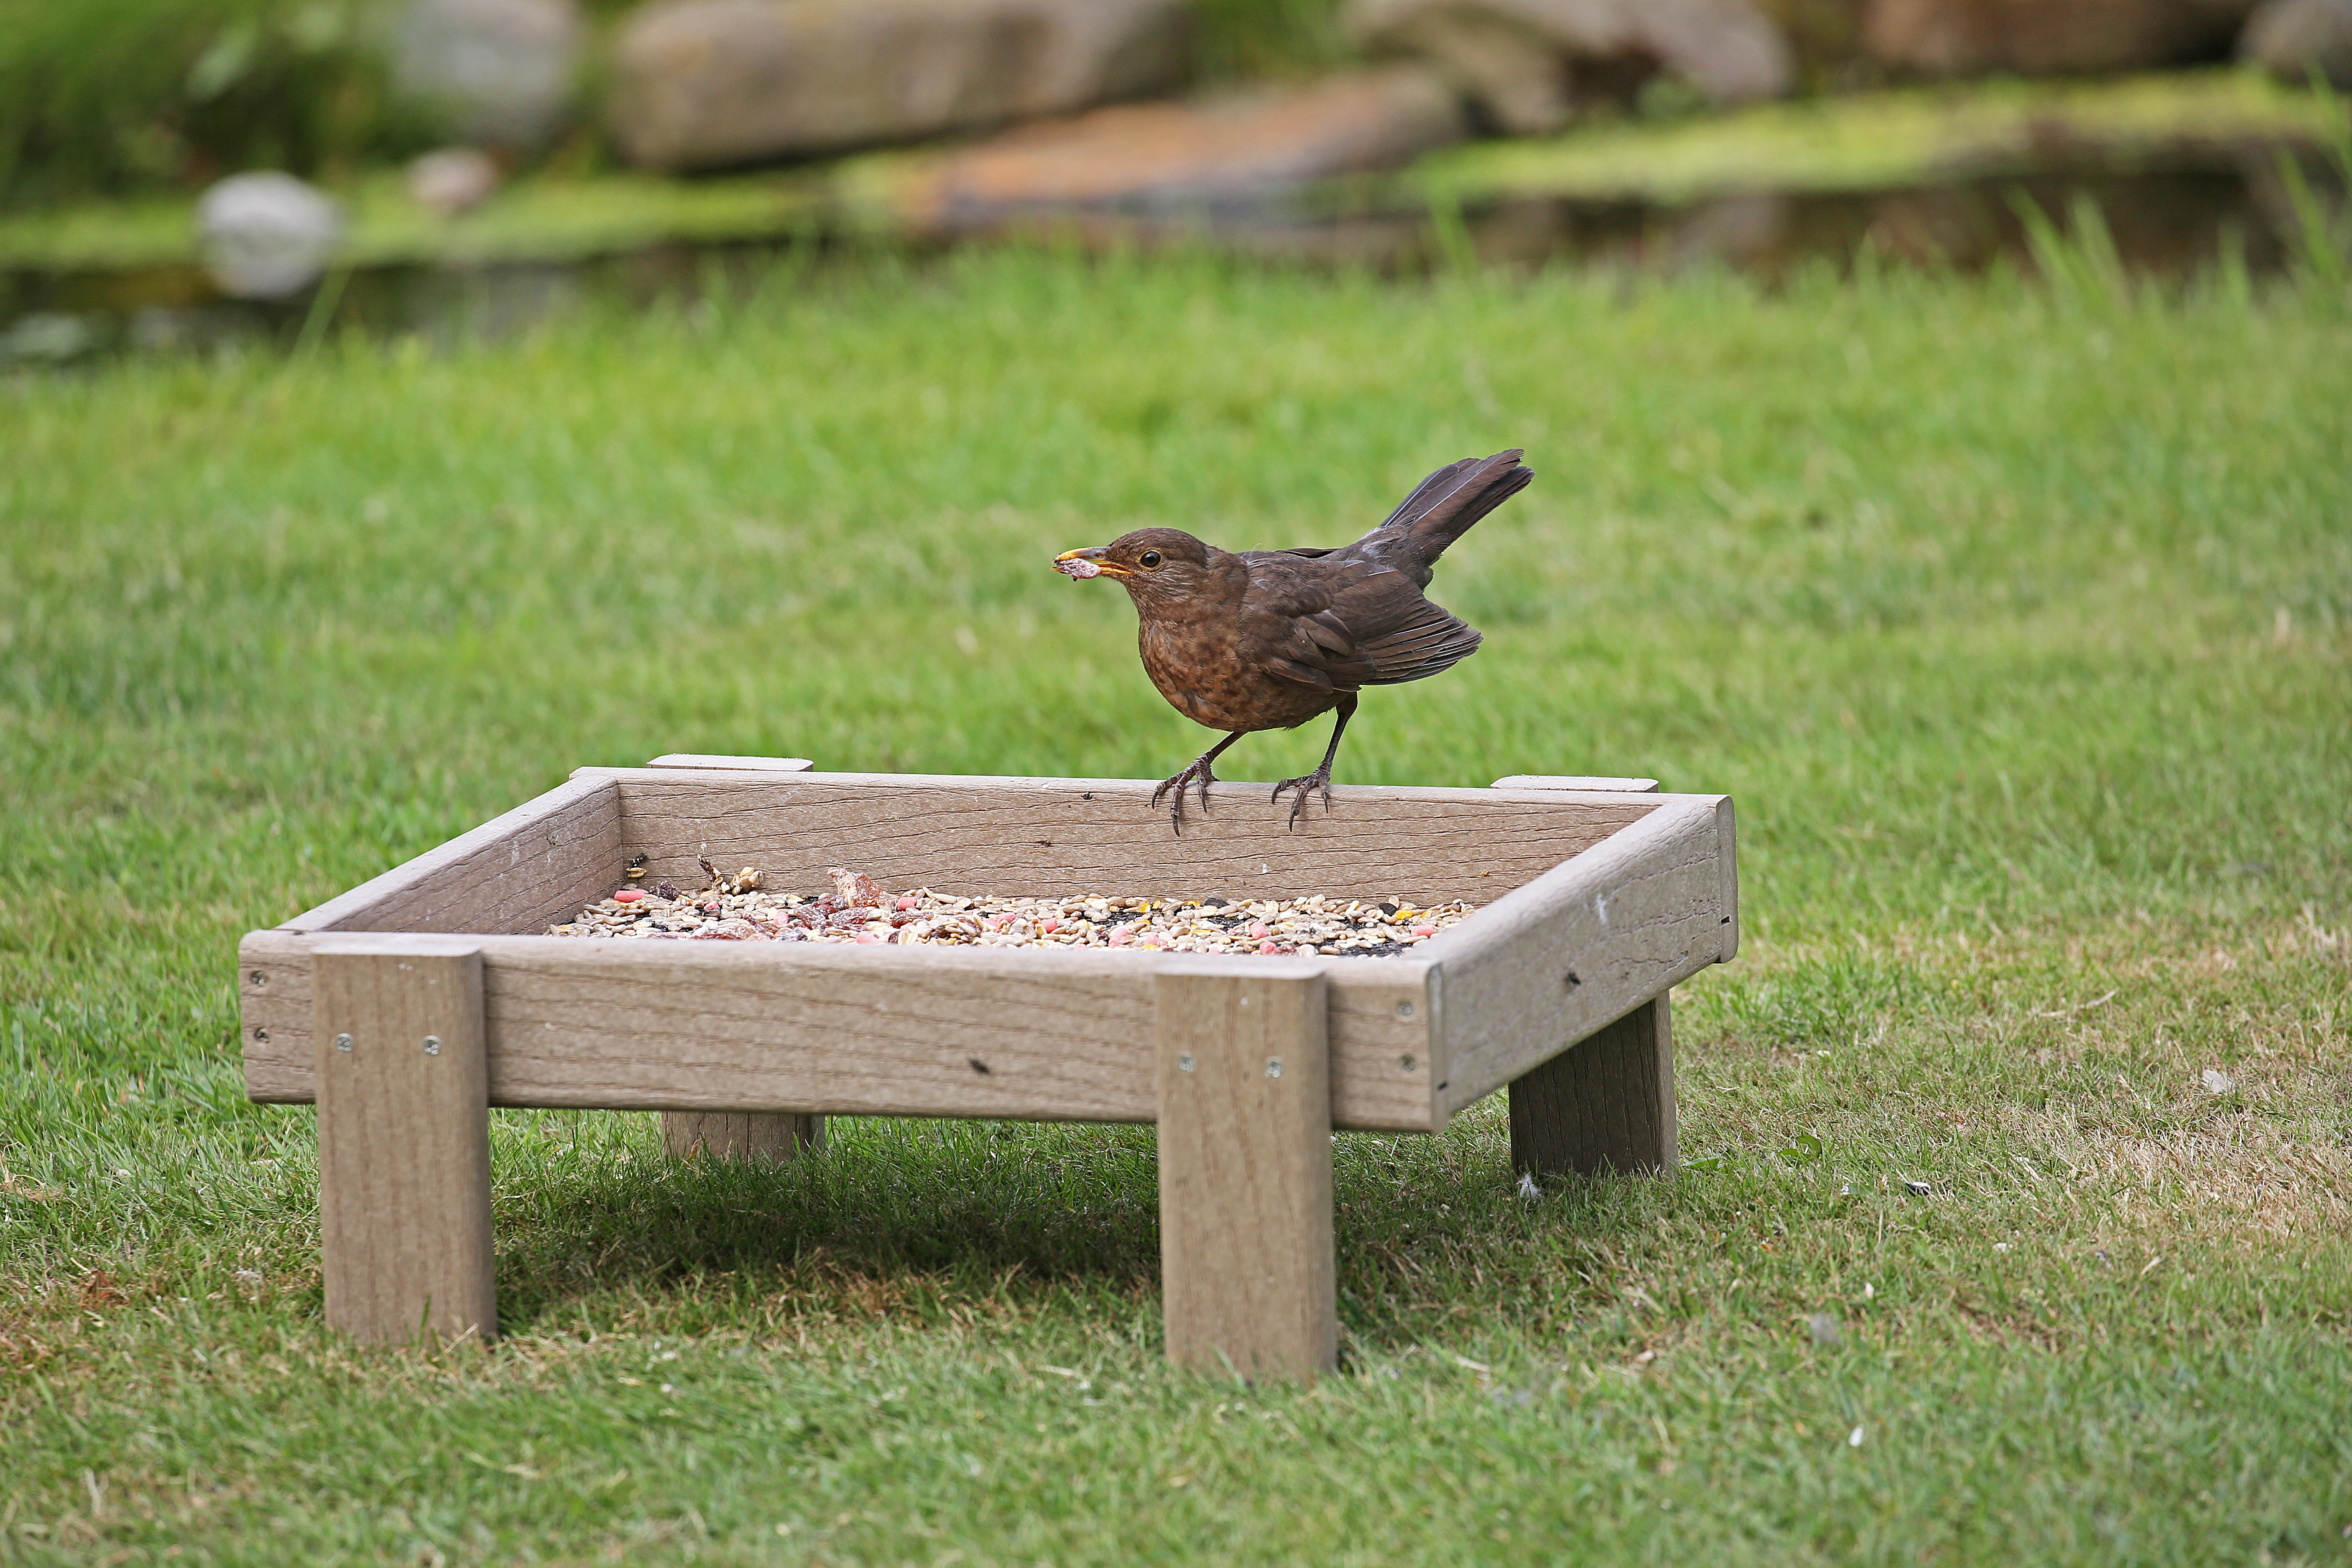 caged bird globe seed nuttery plastic ground tray with feeder